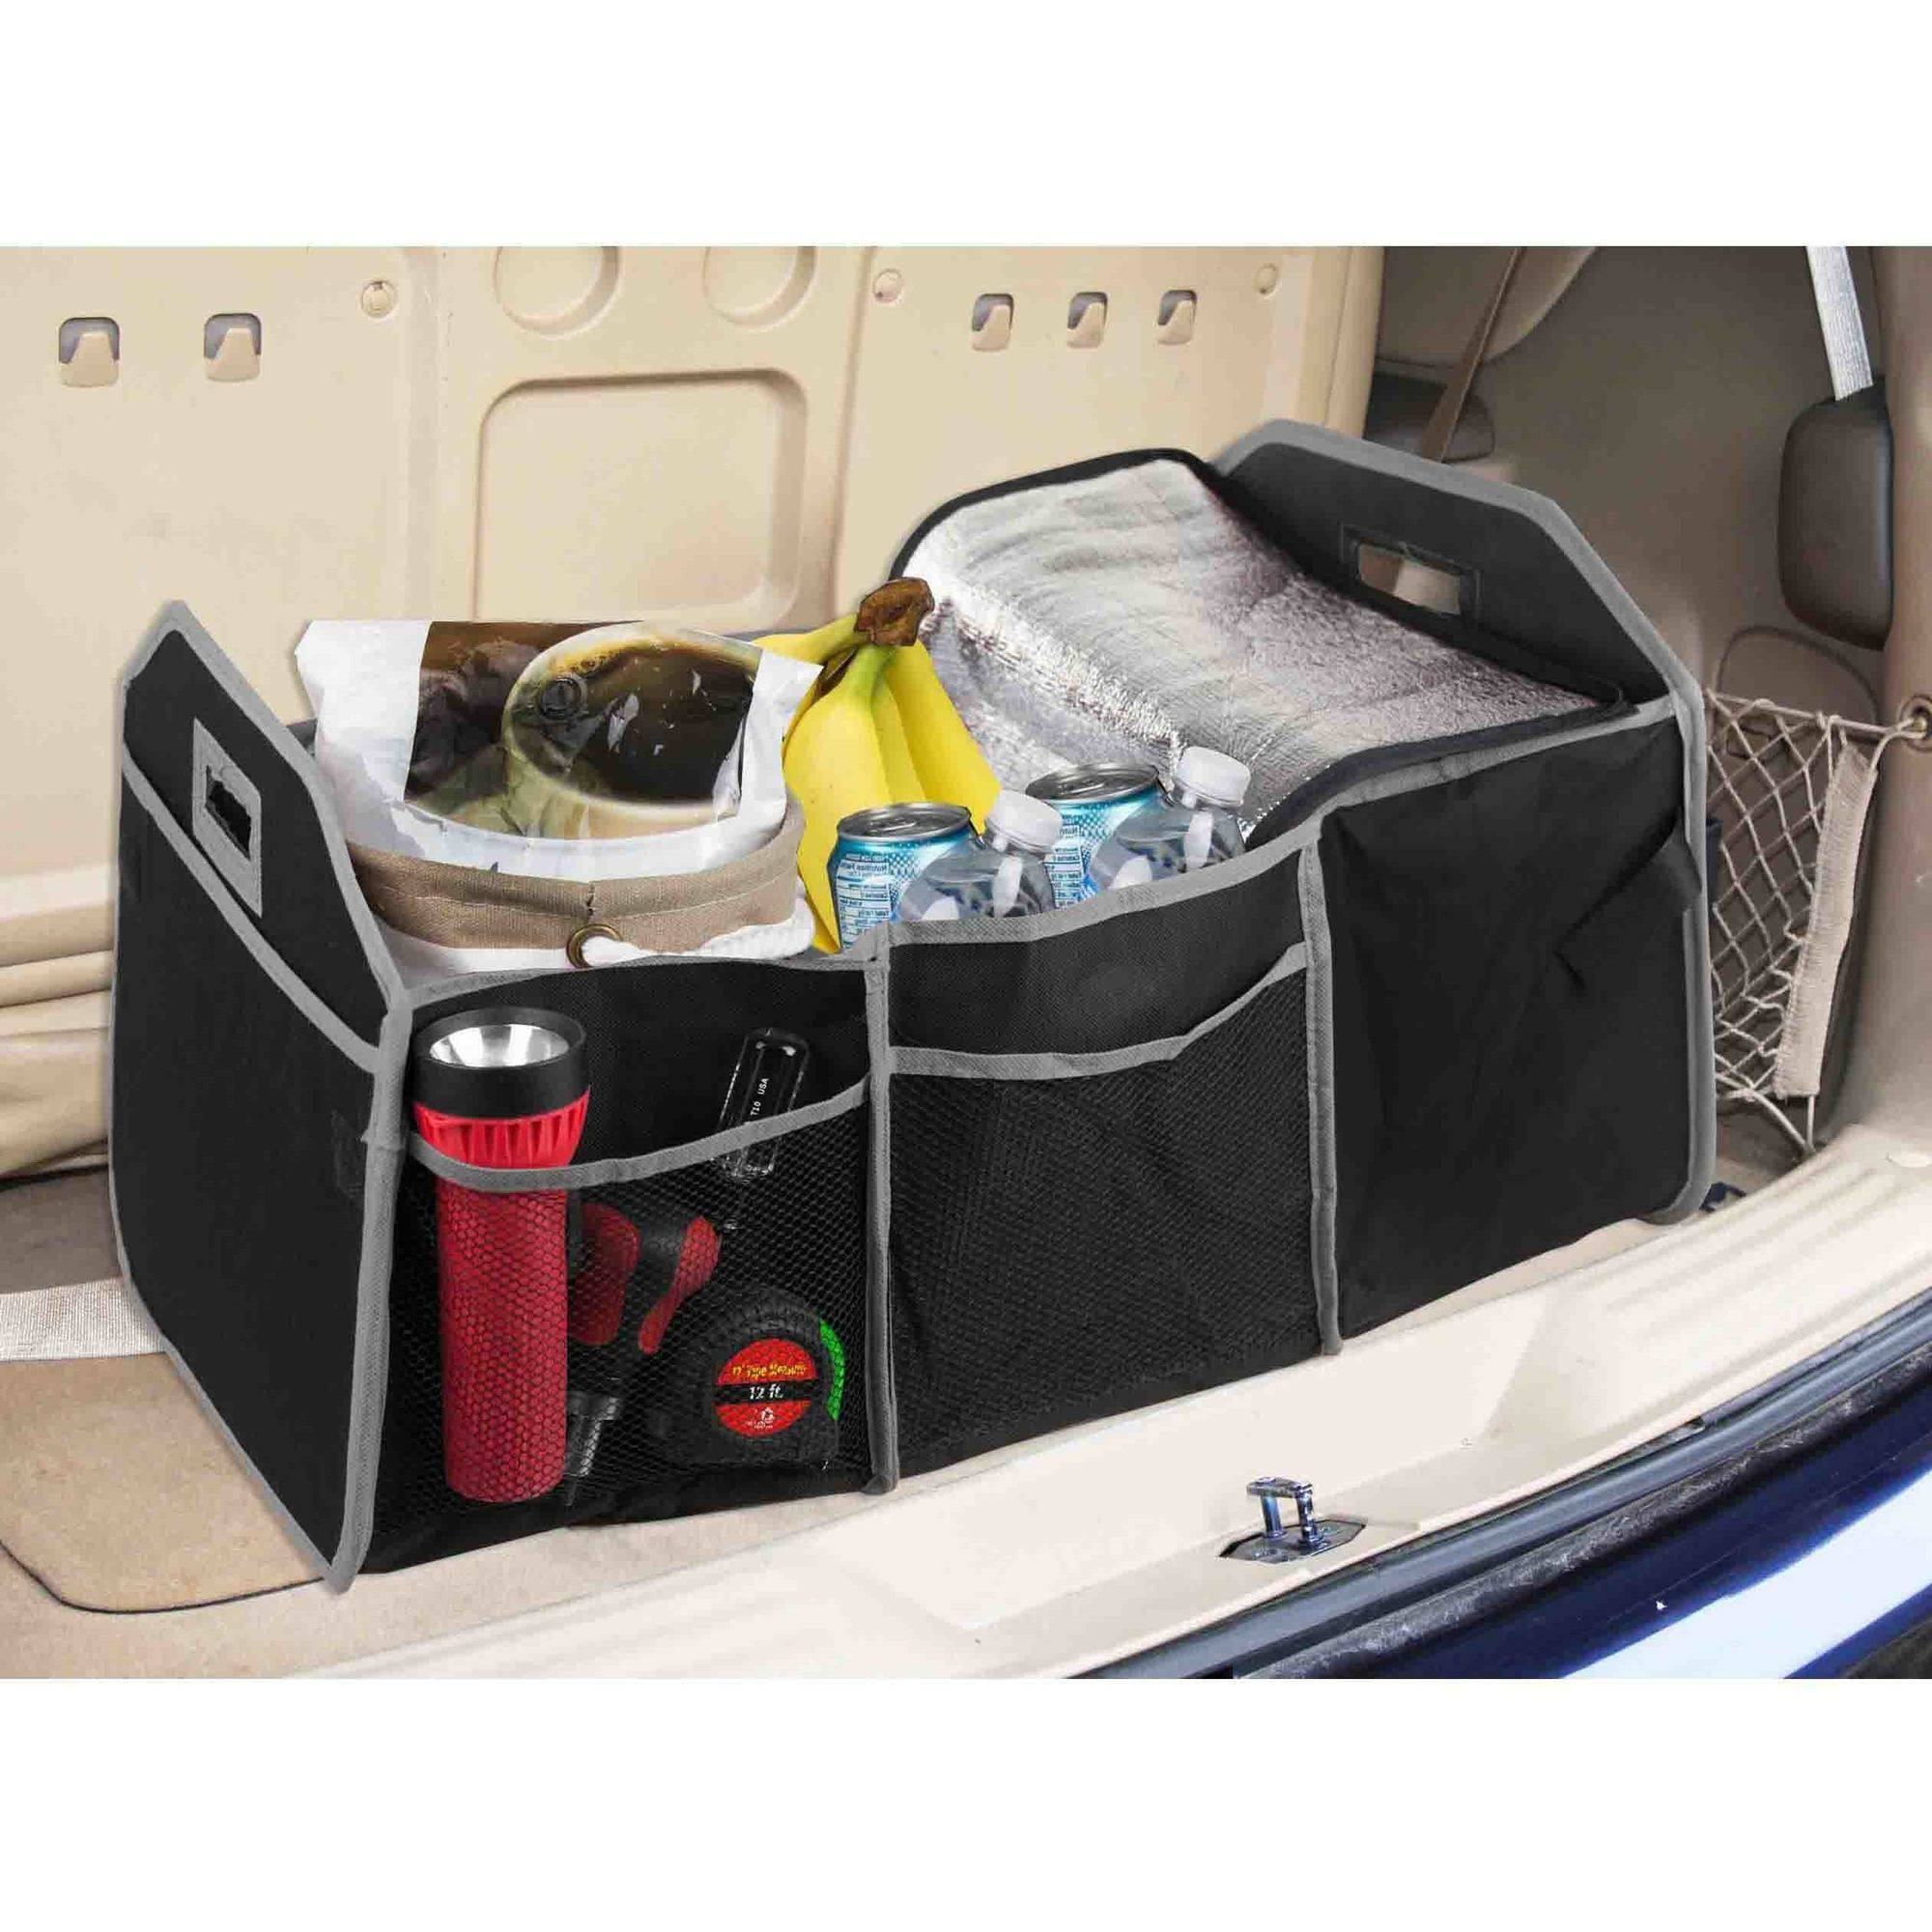 Home Basics Trunk Organizer with Cooler, Black and Grey